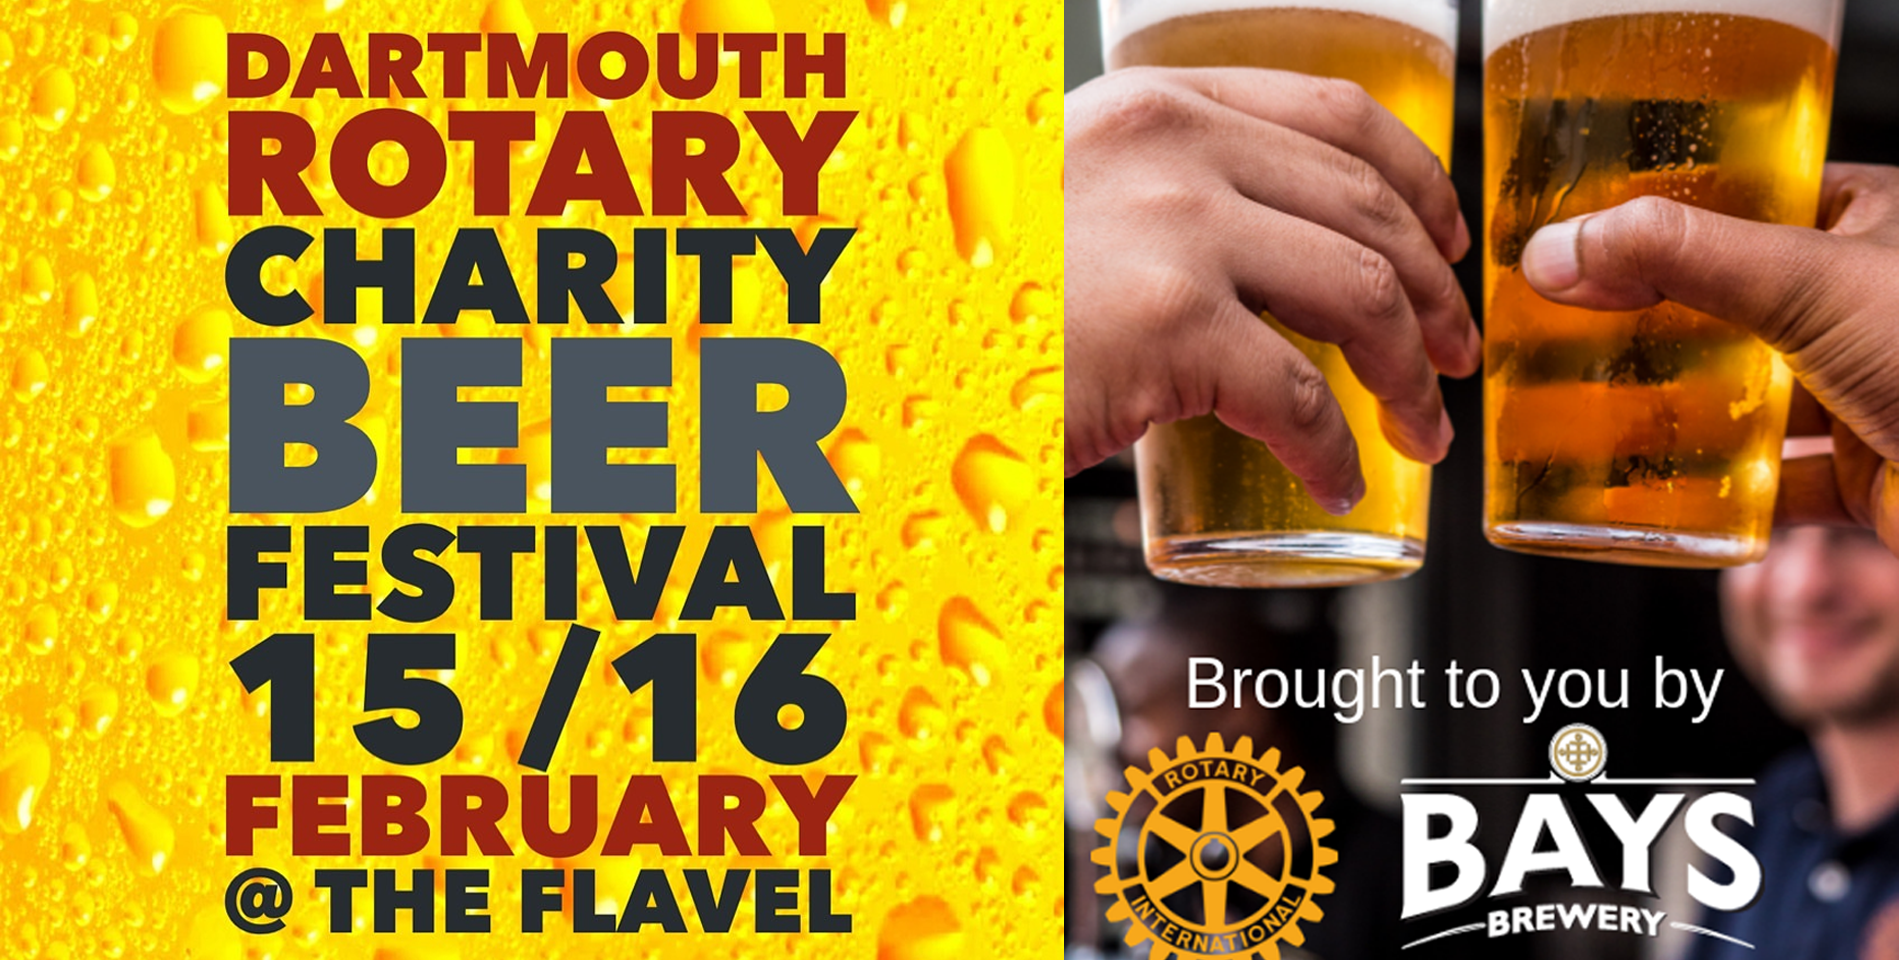 Dartmouth Charity Beer Festival